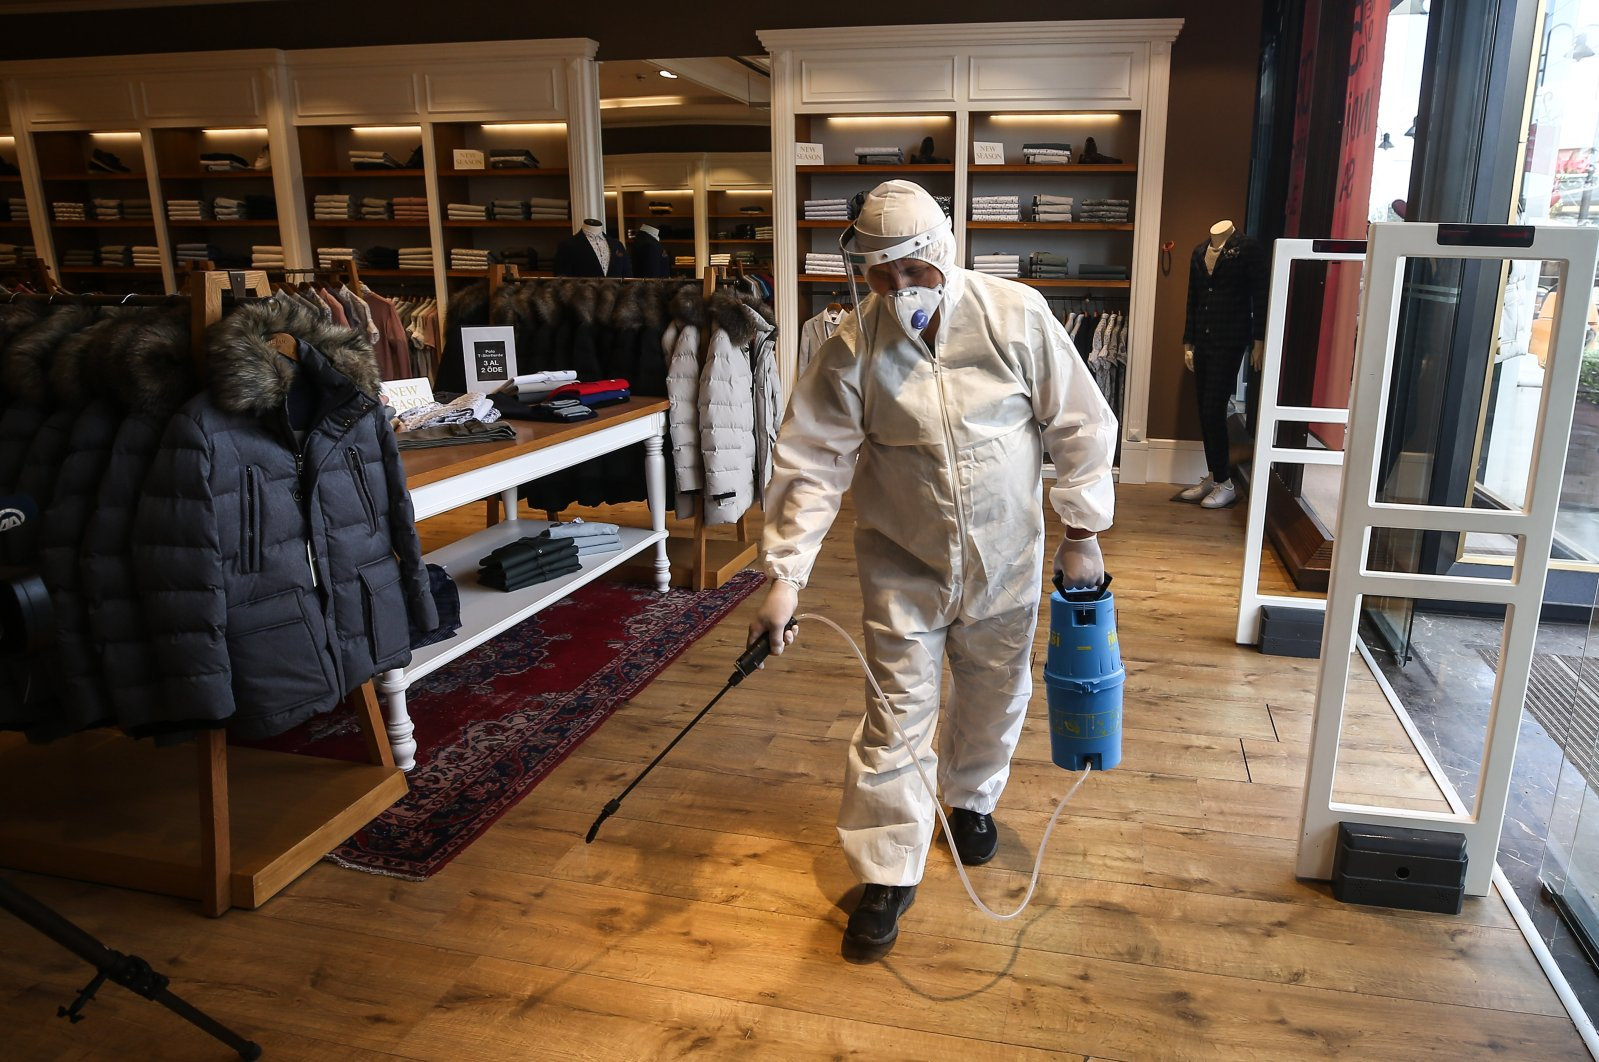 A worker sprays disinfectant at a store at a shopping mall in Istanbul, May 6, 2020. (AA Photo)